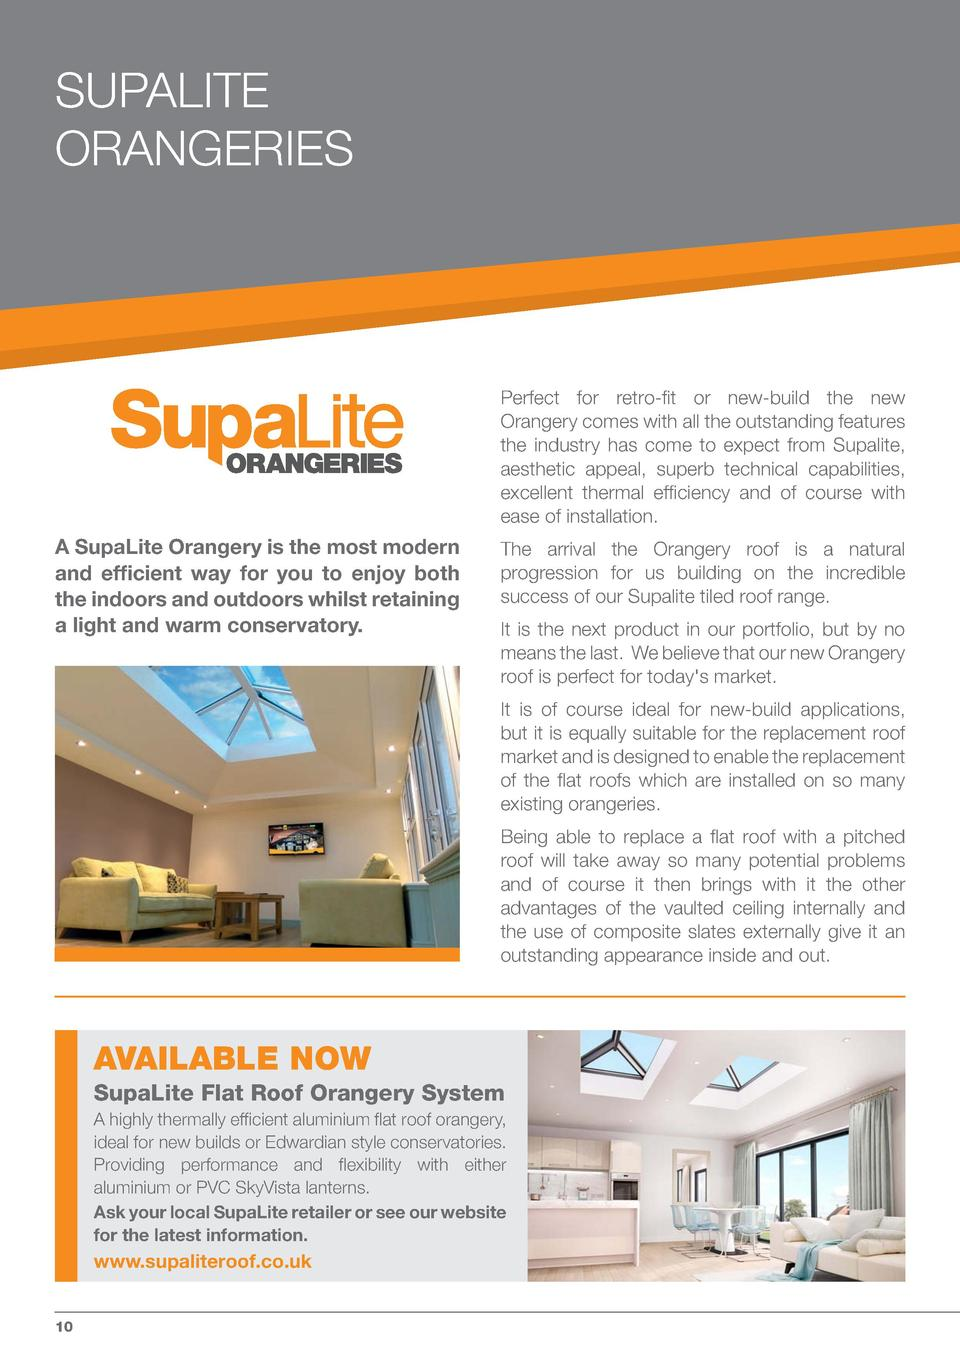 SUPALITE ORANGERIES  THERMAL FLAT ROOF ALUMINIUM ORANGERIES  A SupaLite Orangery is the most modern and efficient way for ...